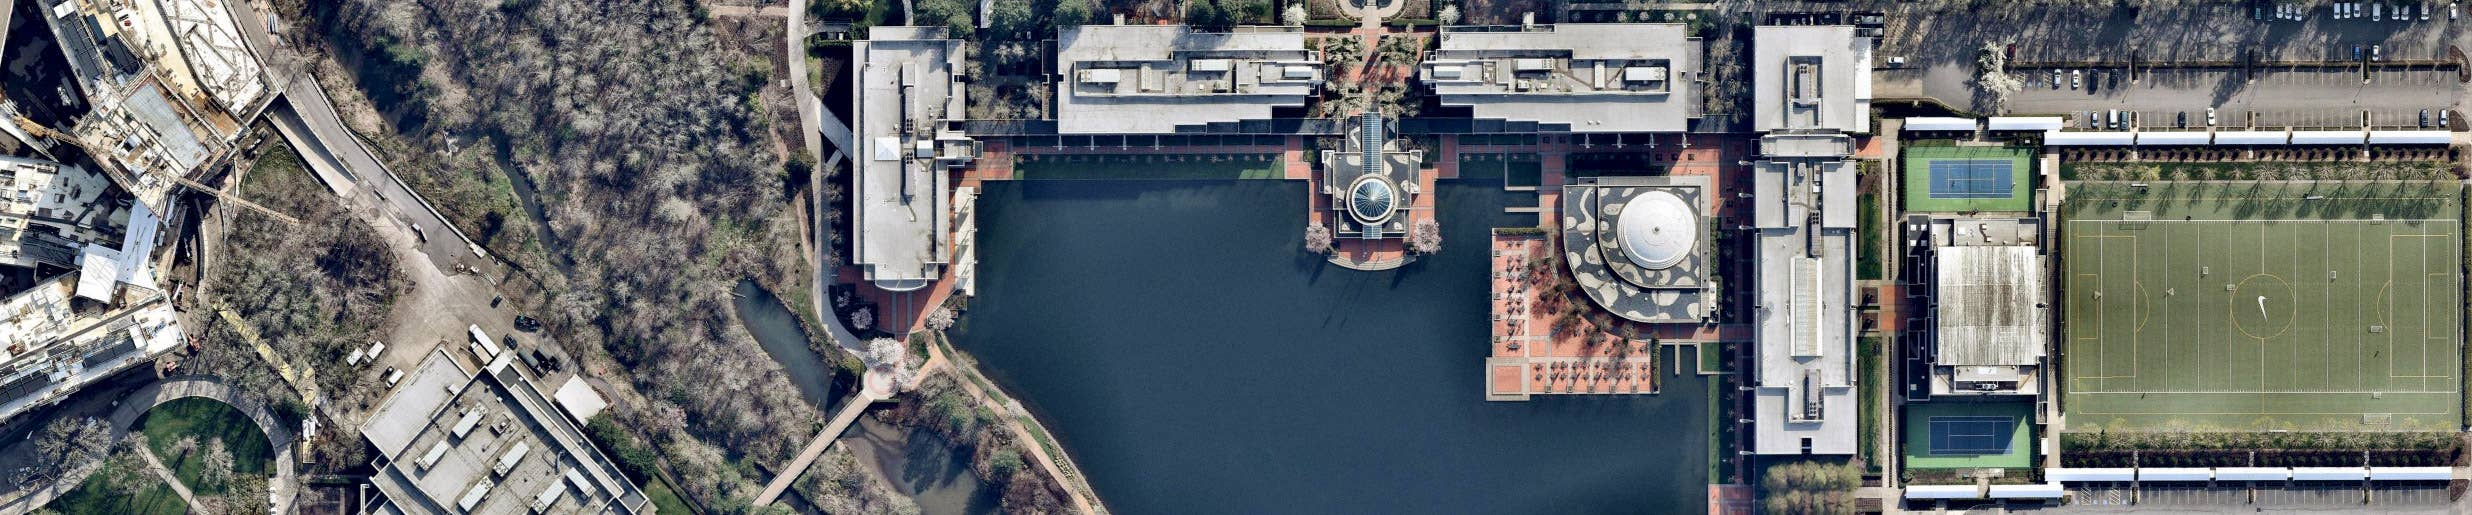 Aerial View, Nike World Campus, Beaverton OR -- 30 March 2019